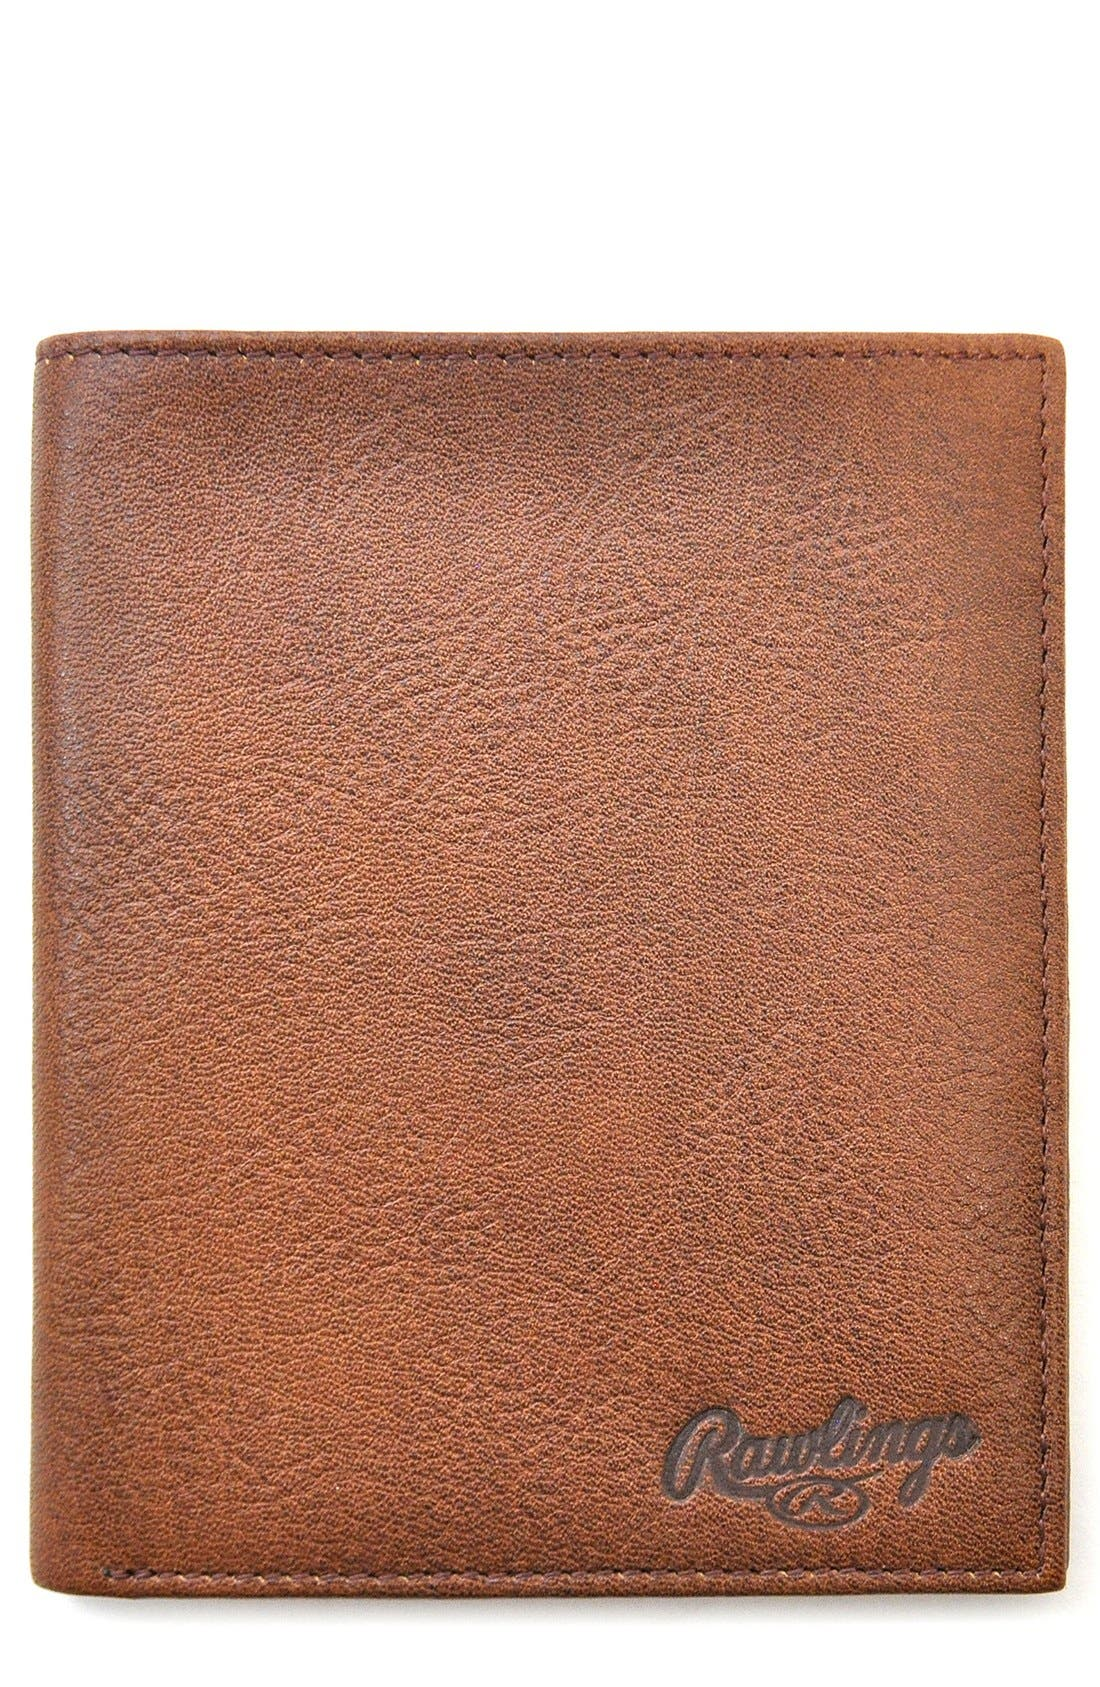 Alternate Image 1 Selected - Rawlings® Triple Play Leather Executive Wallet